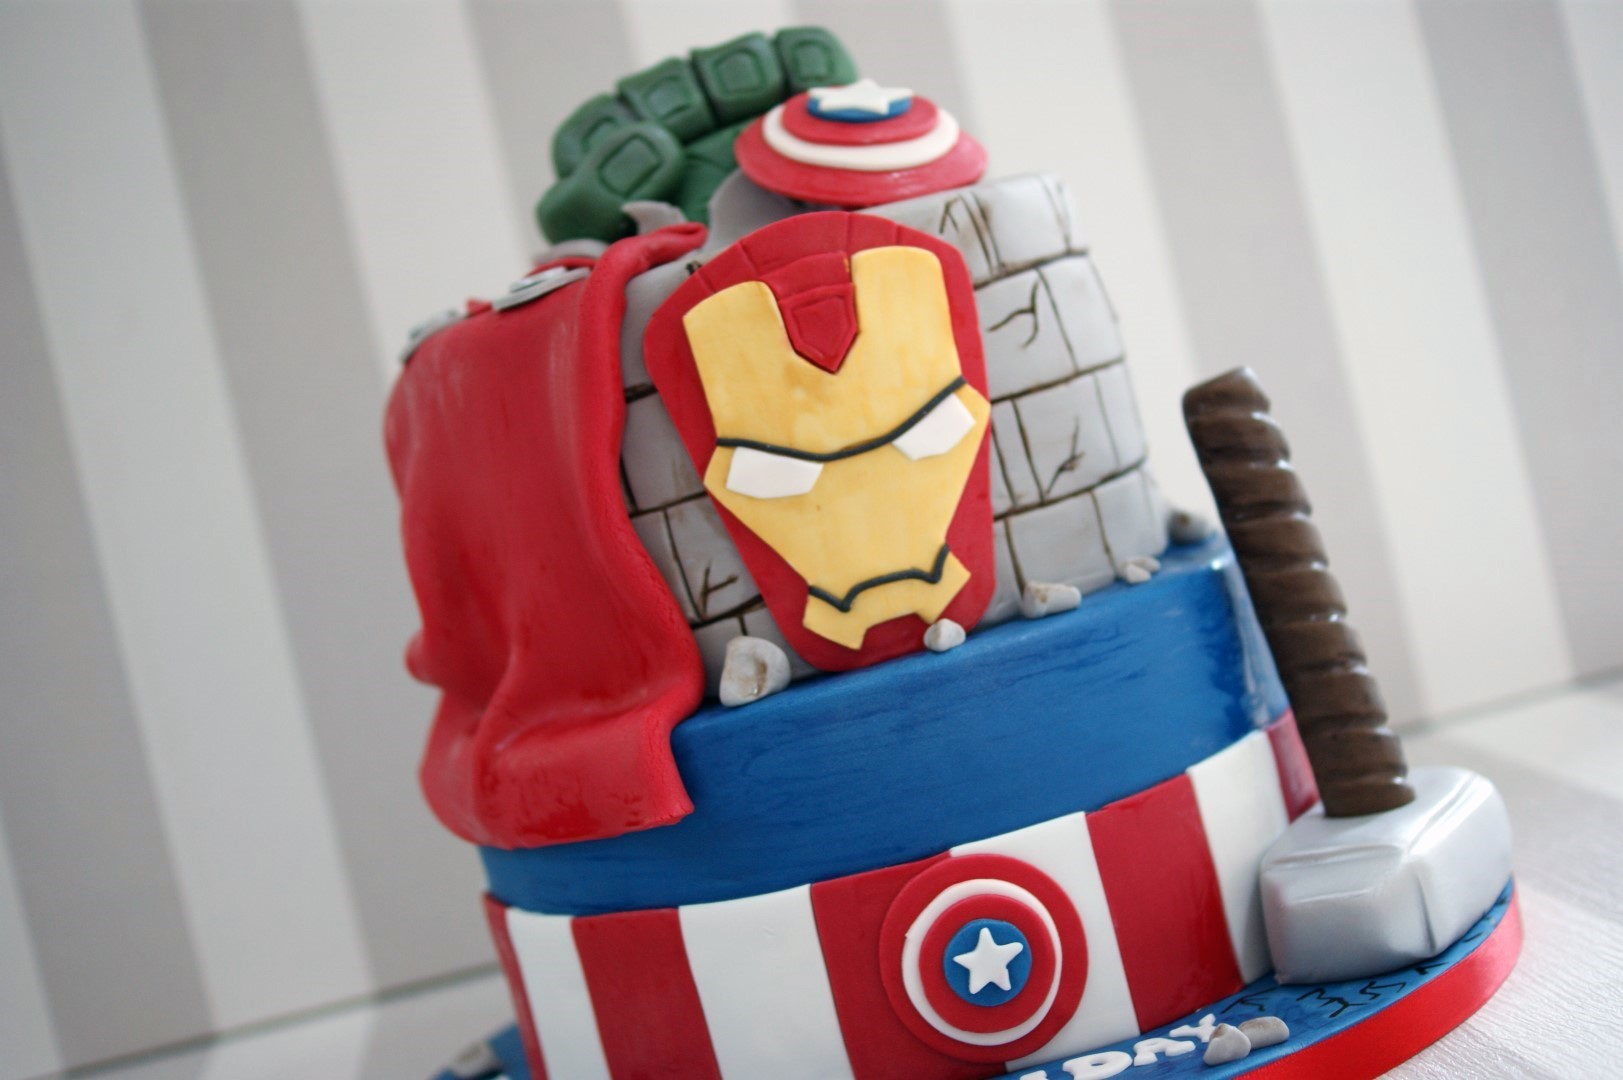 Magnificent 2 Tier Marvel Avengers Birthday Cake Bakealous Funny Birthday Cards Online Alyptdamsfinfo